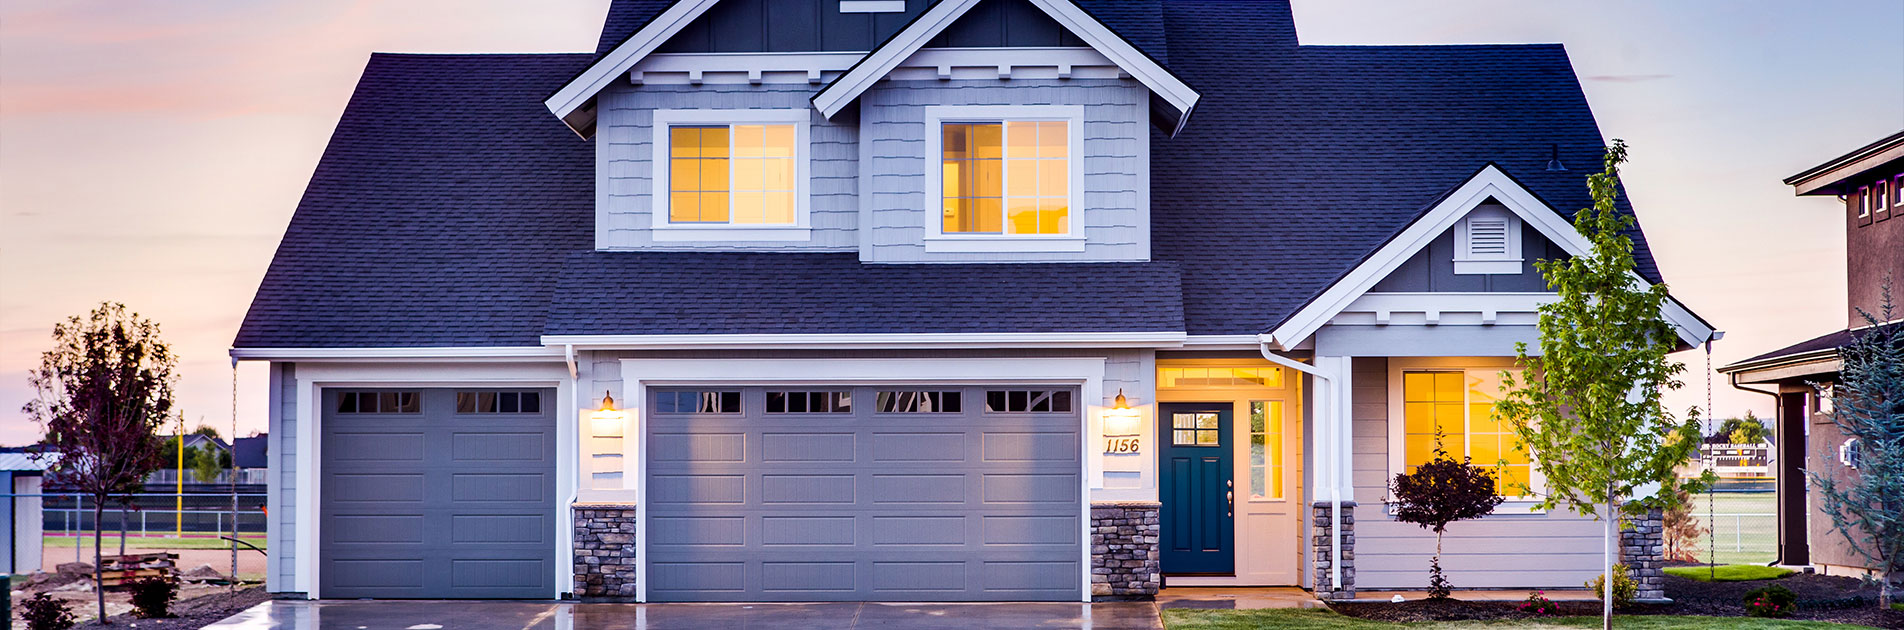 Global Garage Door Service Oak Lawn, IL 708-972-0929